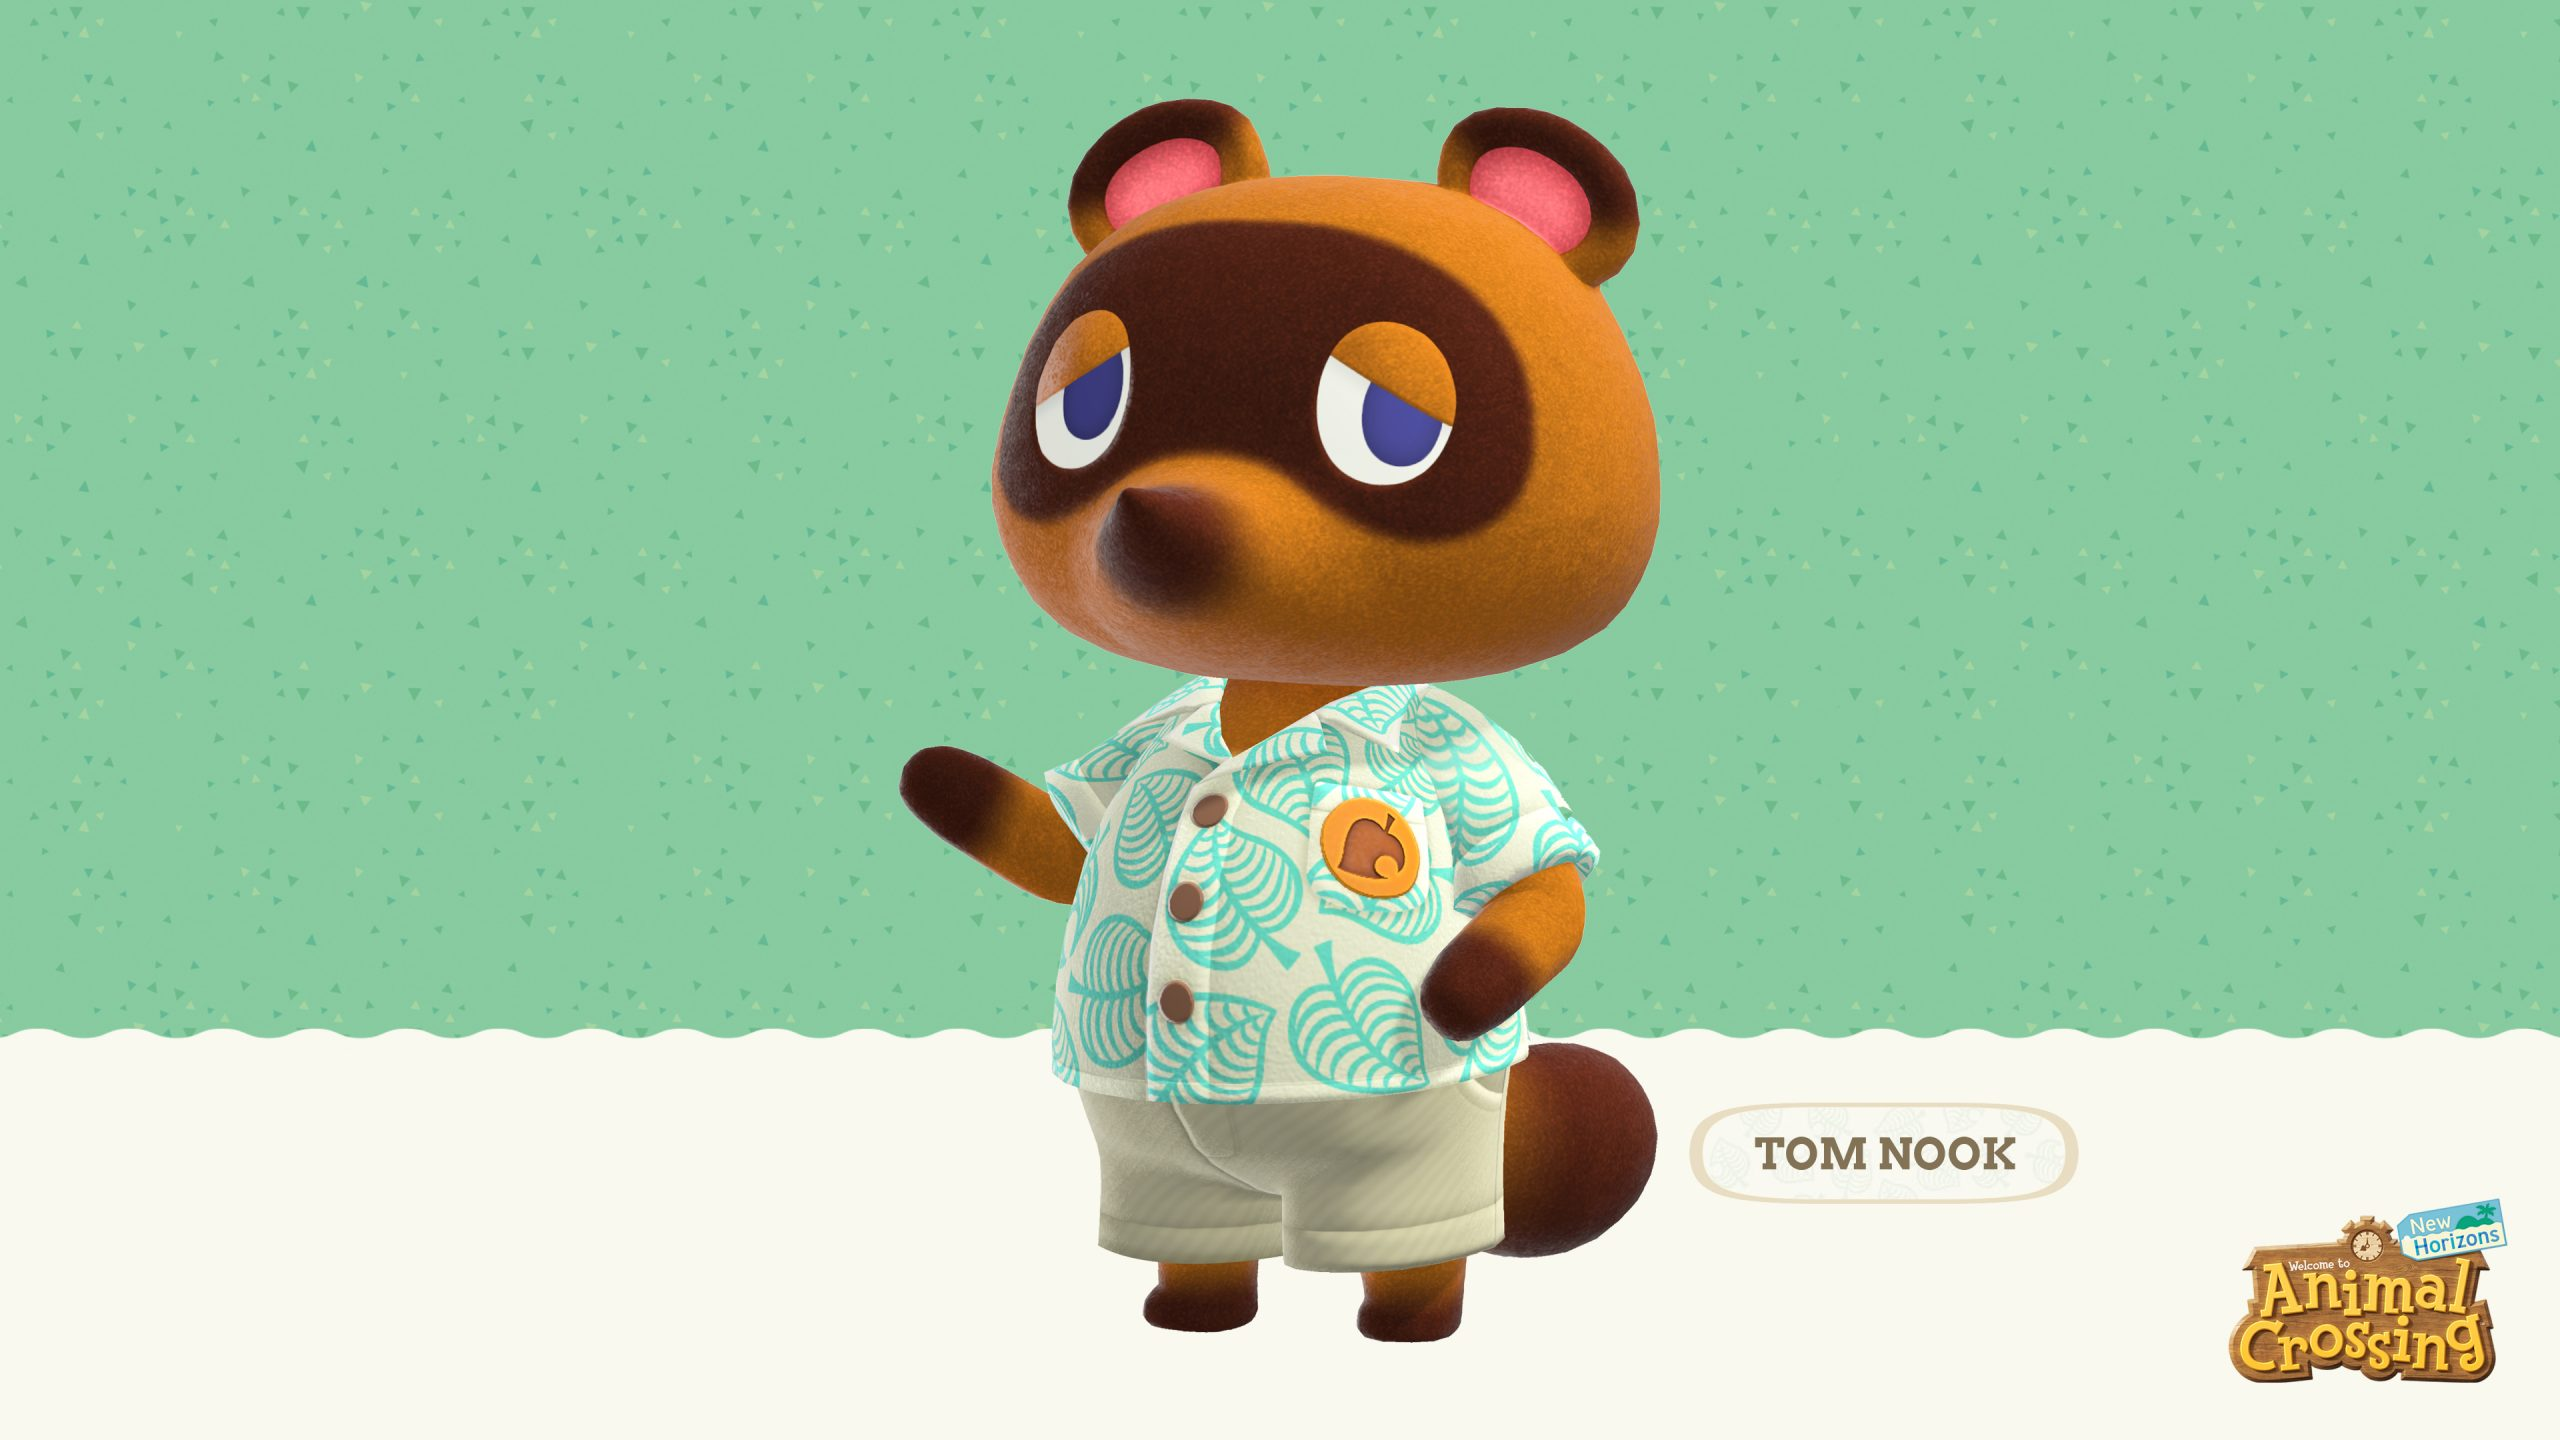 "A Tanooki video game character stands wearing a light green tropical shirt and khaki shorts. A title says ""Tom Nook."" A logo for Animal Crossing New Horizons is displayed in the bottom left corner."